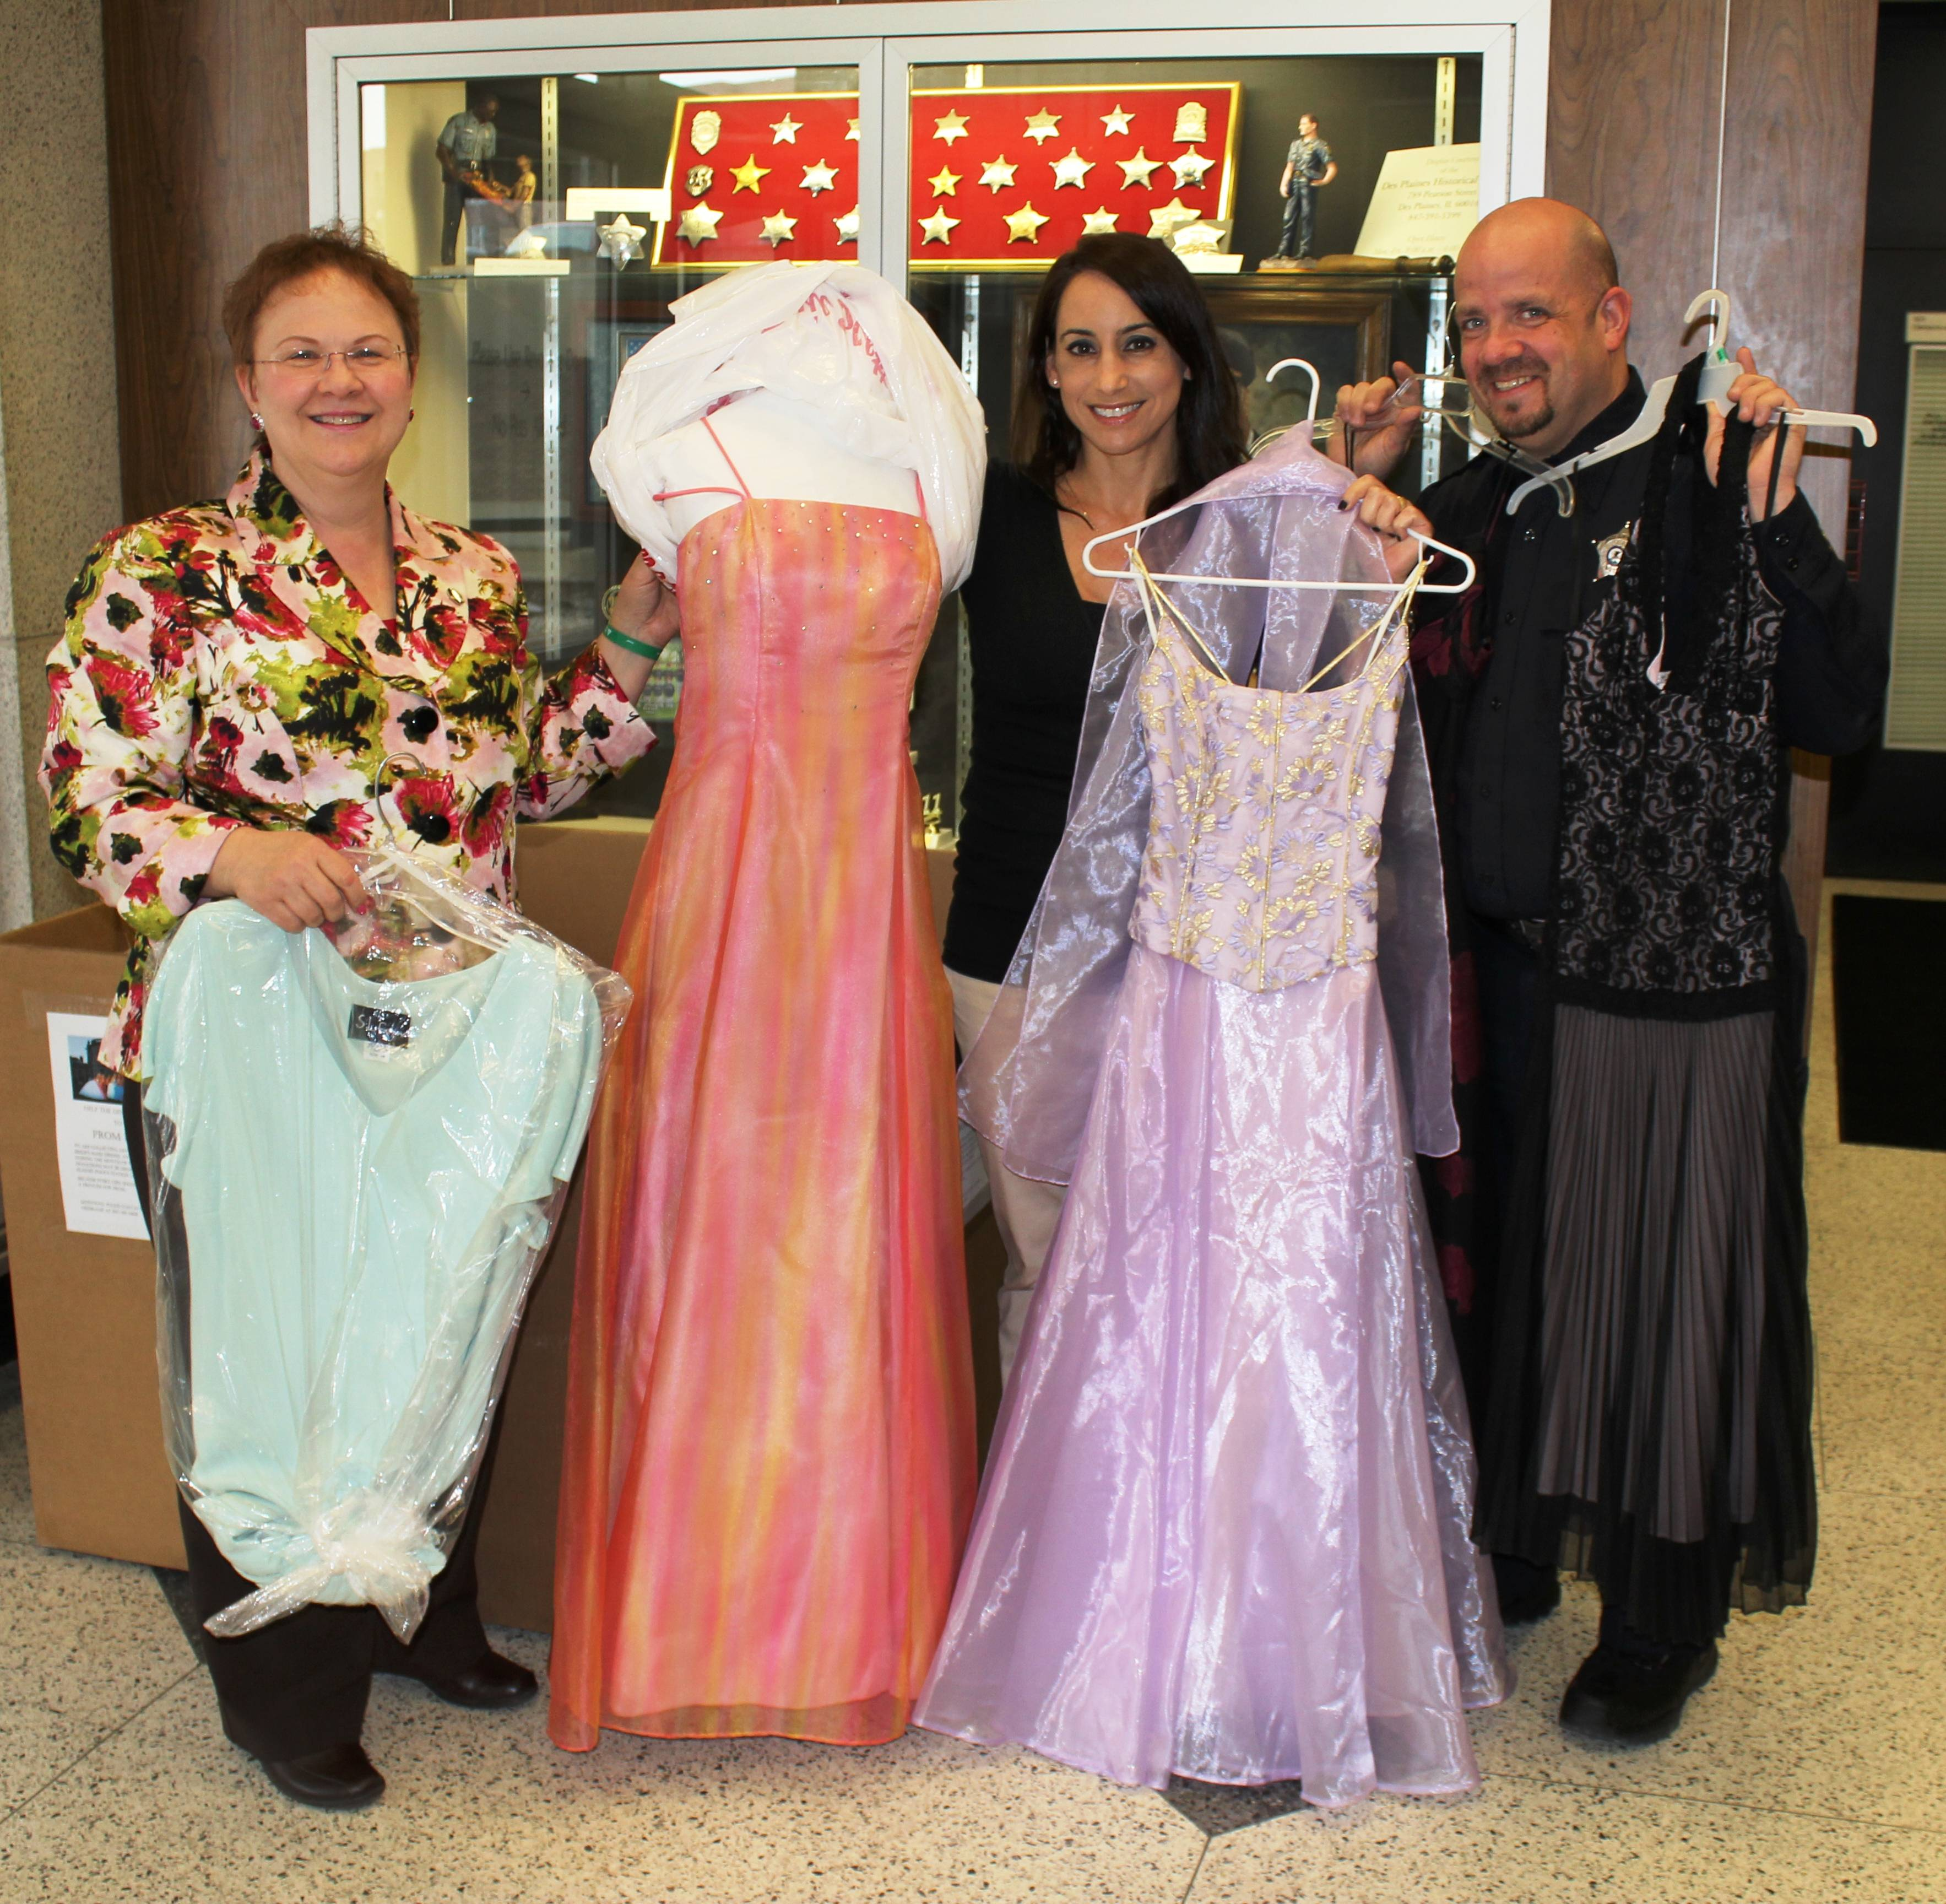 (pictured) Des Plaines City Clerk Gloria J. Ludwig (left), making a dress donation, poses for a photograph in the lobby of the Police Station with Detective Jennifer DePastors (middle) and Officer Michael Heidkamp (right), who is spearheading the Des Plaines Fashion Police: Prom Possible.